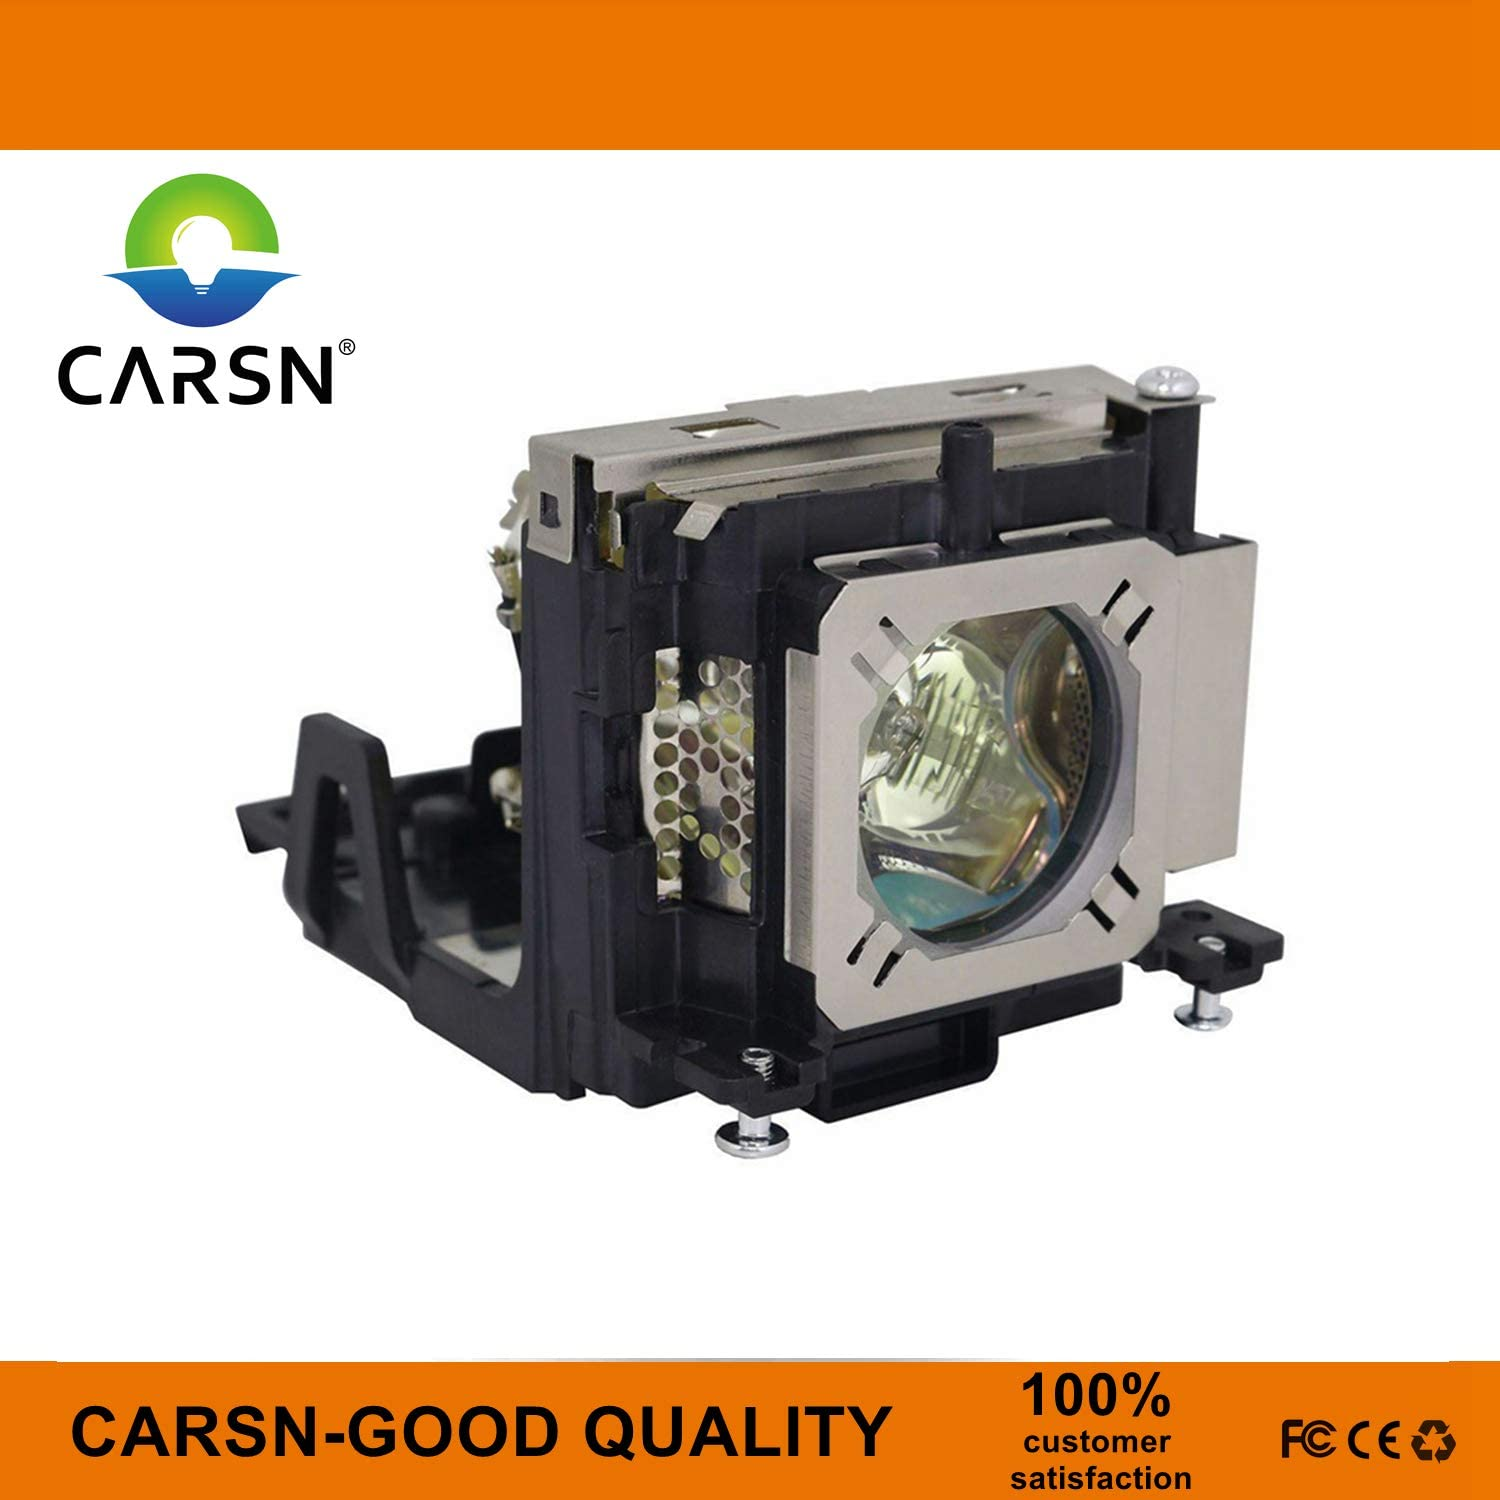 POA-LMP132 610-345-2456 Replacement Projector Lamp for Sanyo PLC-XE33 PLC-XW200 PLC-XW250 PLC-XW200K PLC-XW250K PLC-XR201 PLC-XW300 Lamp with Housing by CARSN